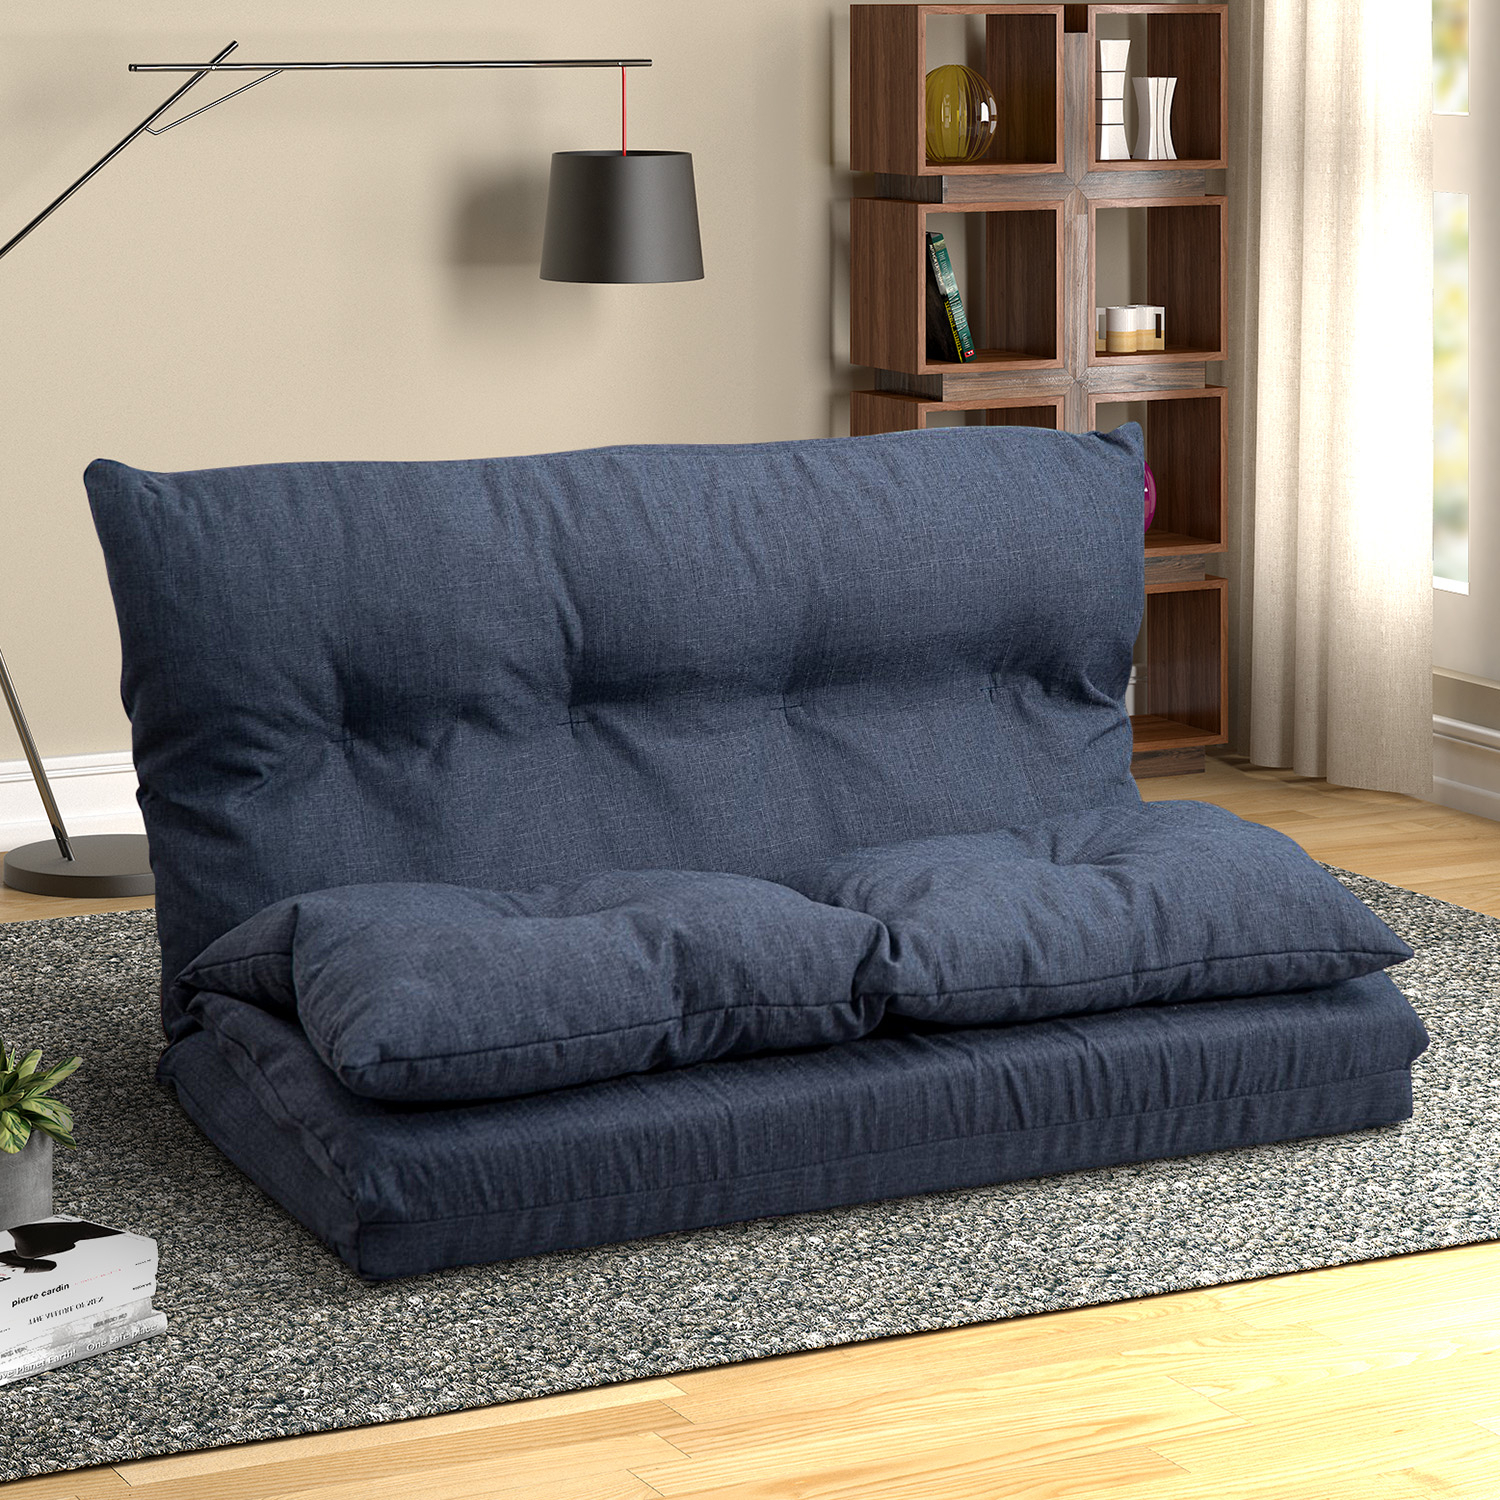 Floor Sofa Bed, Foldable Double Chaise Lounge Sofa Chair Inside Sofa With Chairs (View 10 of 15)